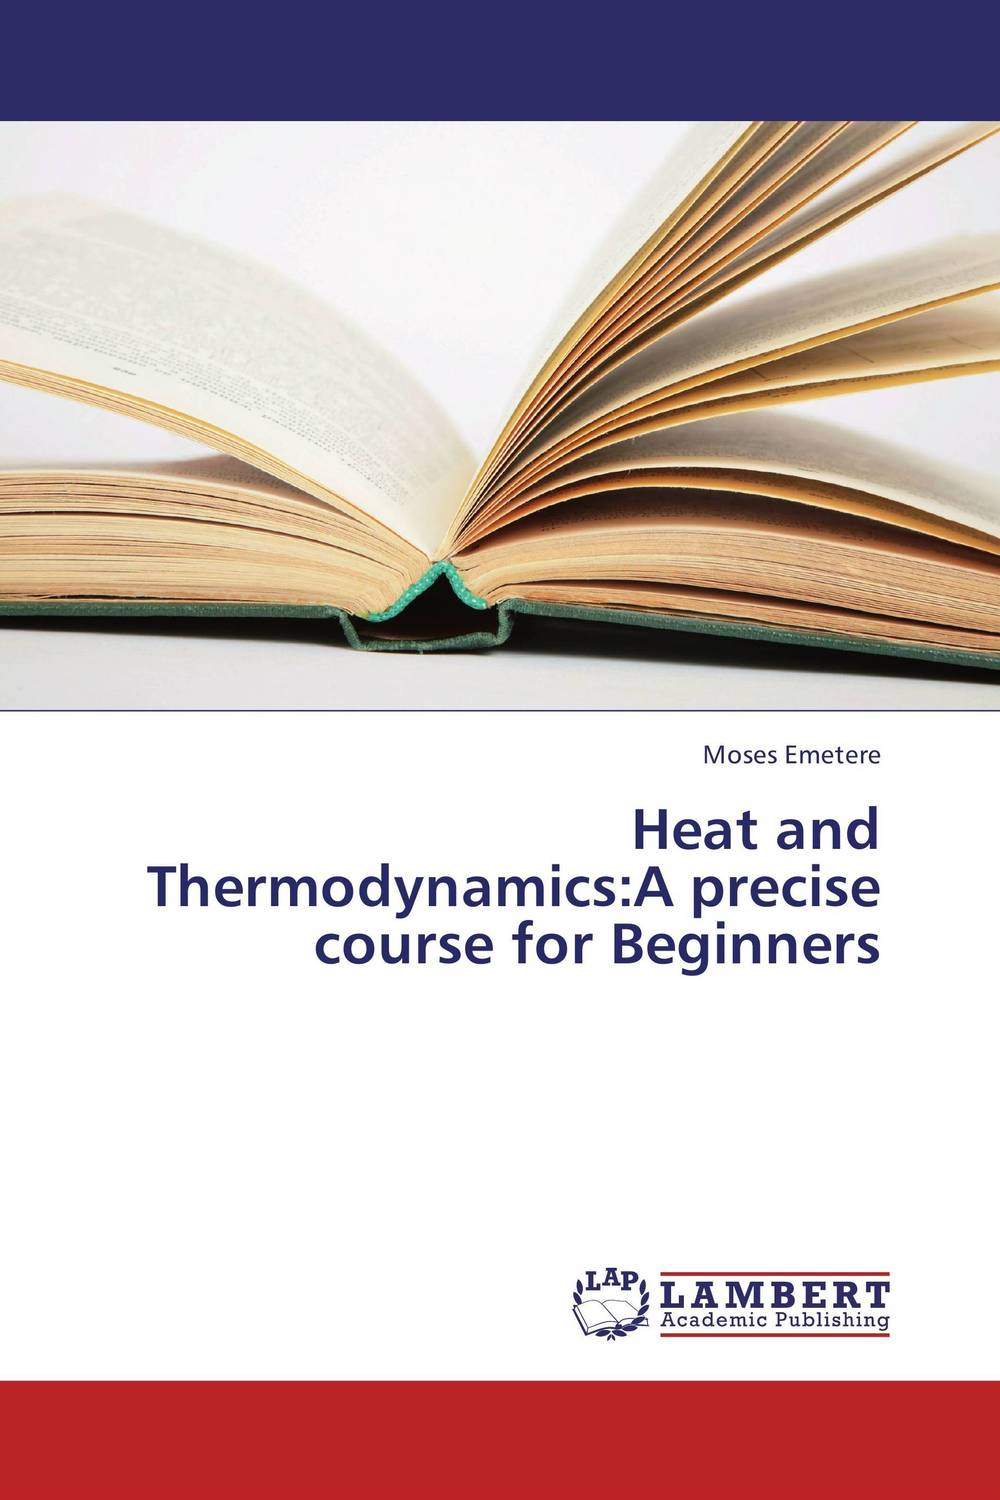 Heat and Thermodynamics:A precise course for Beginners